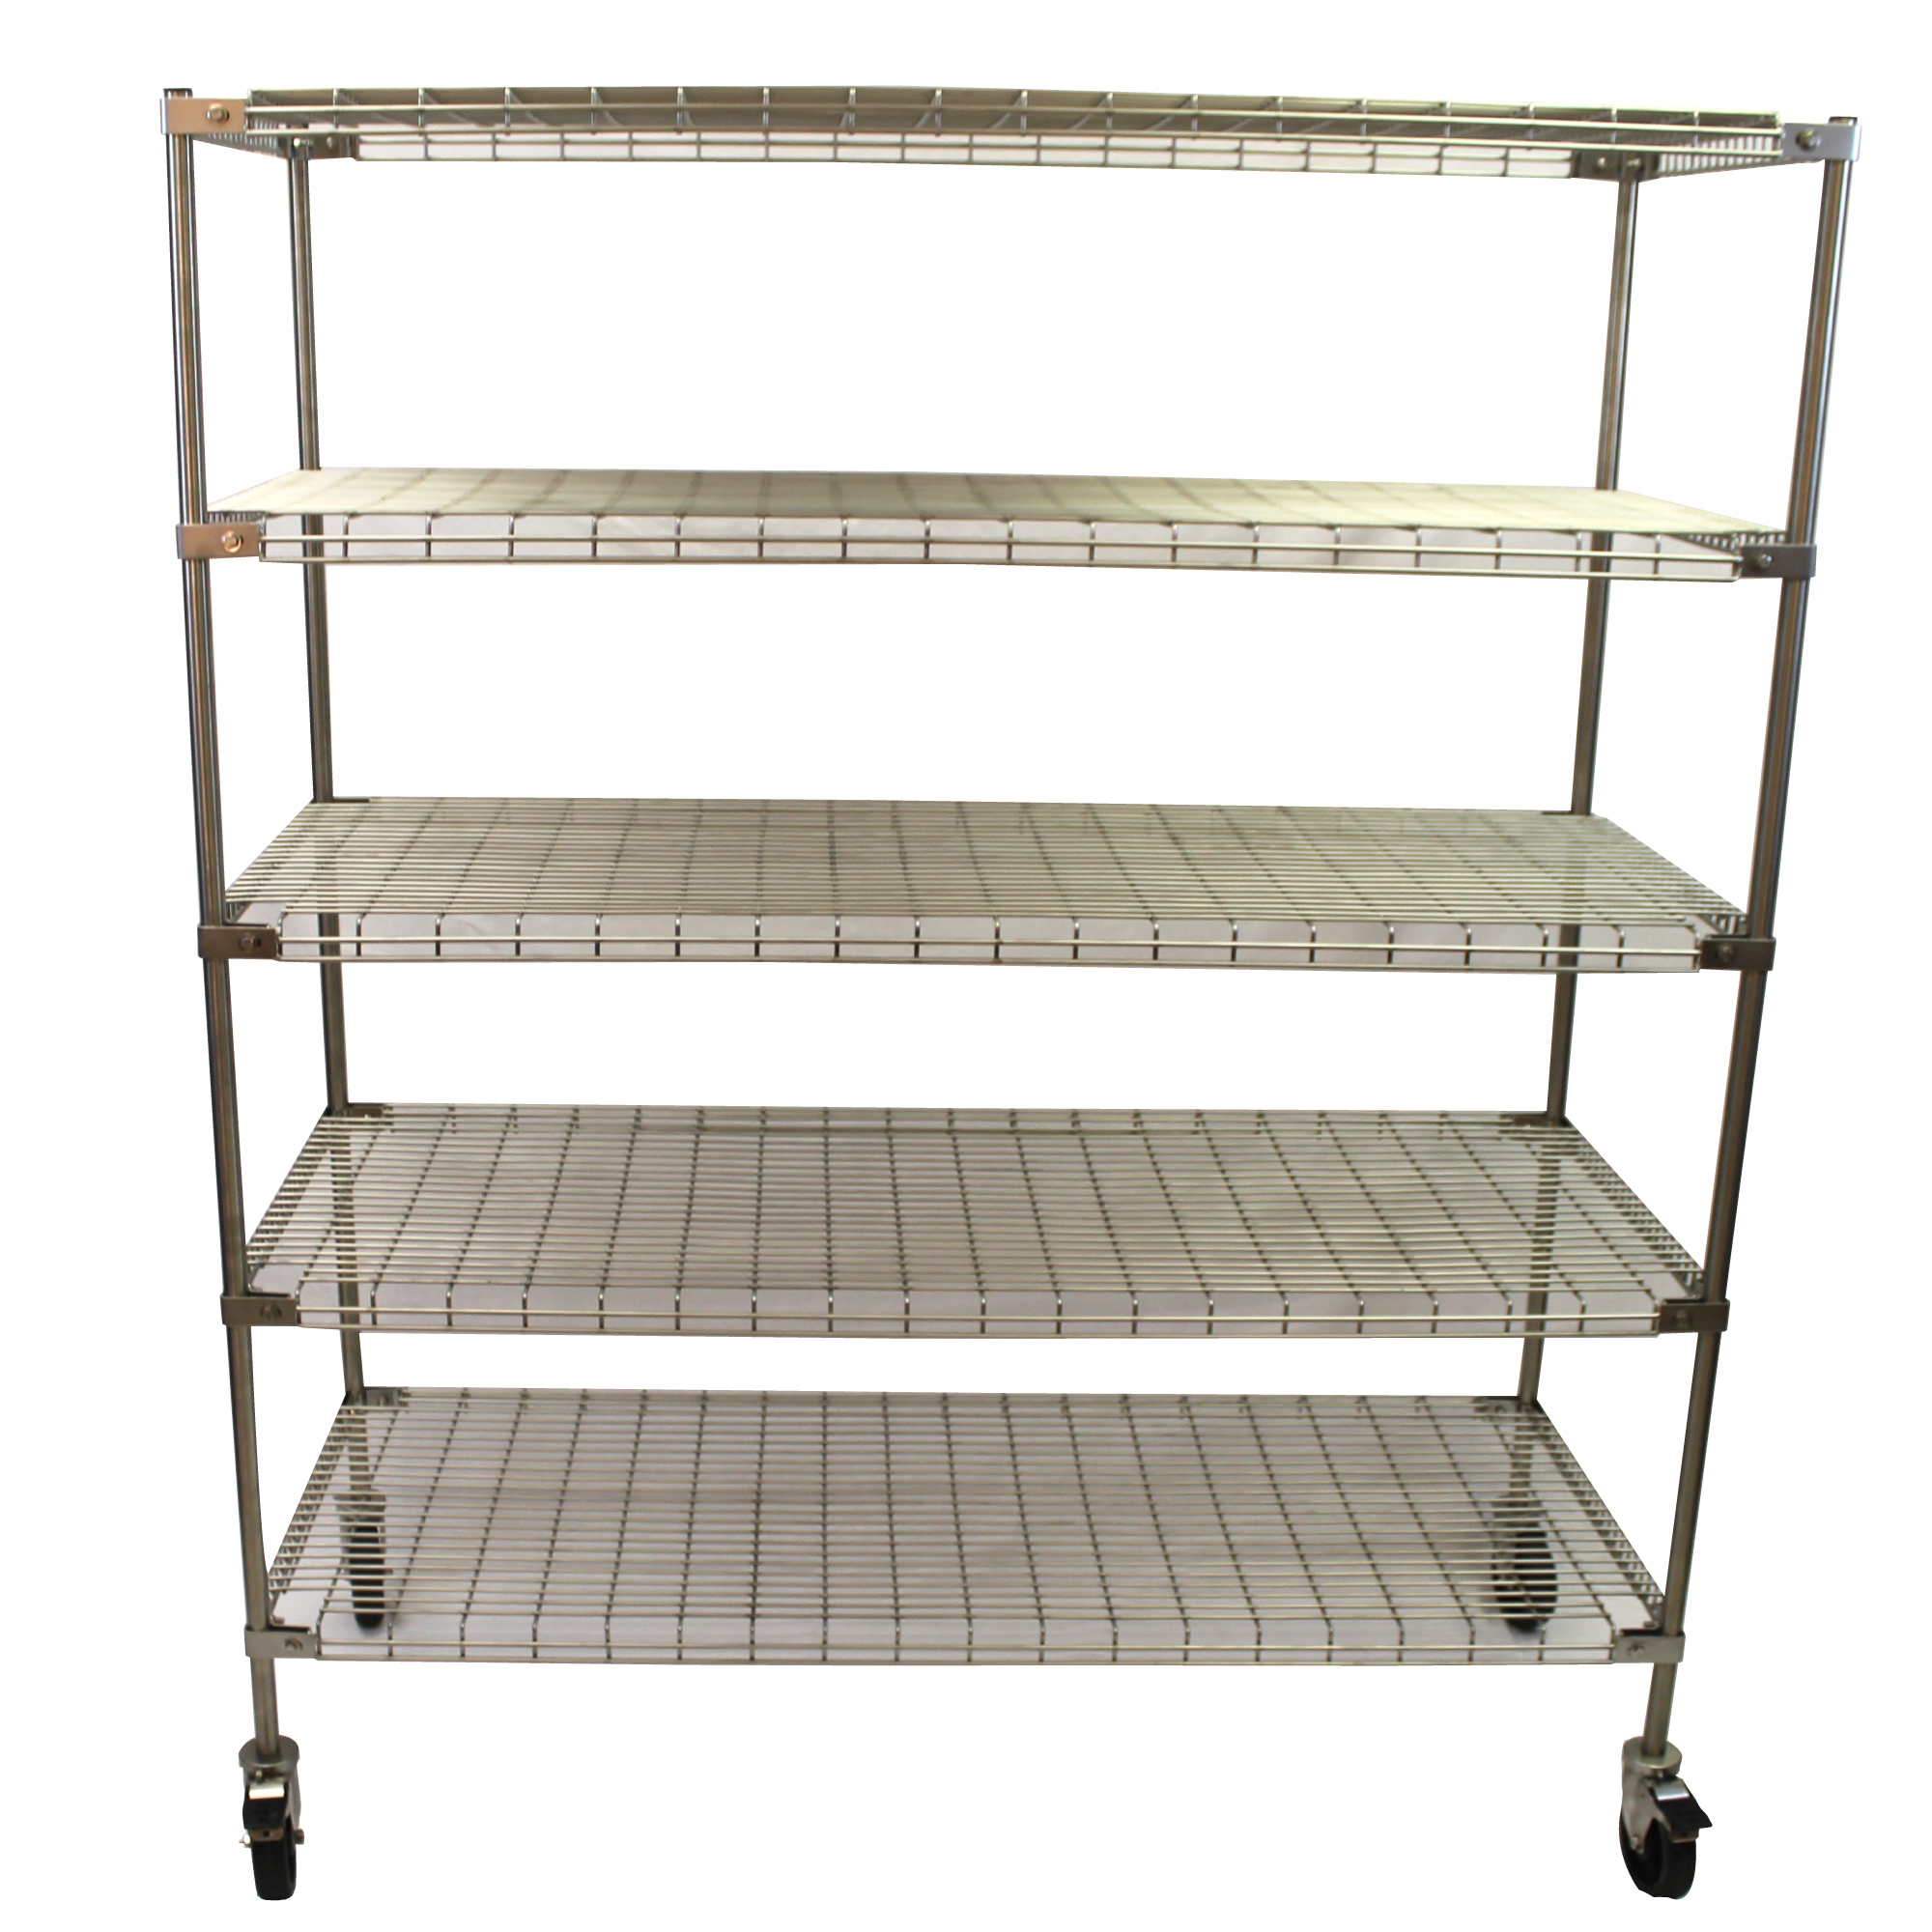 products corner specs heavy dimensions duty shelf origami technical rack